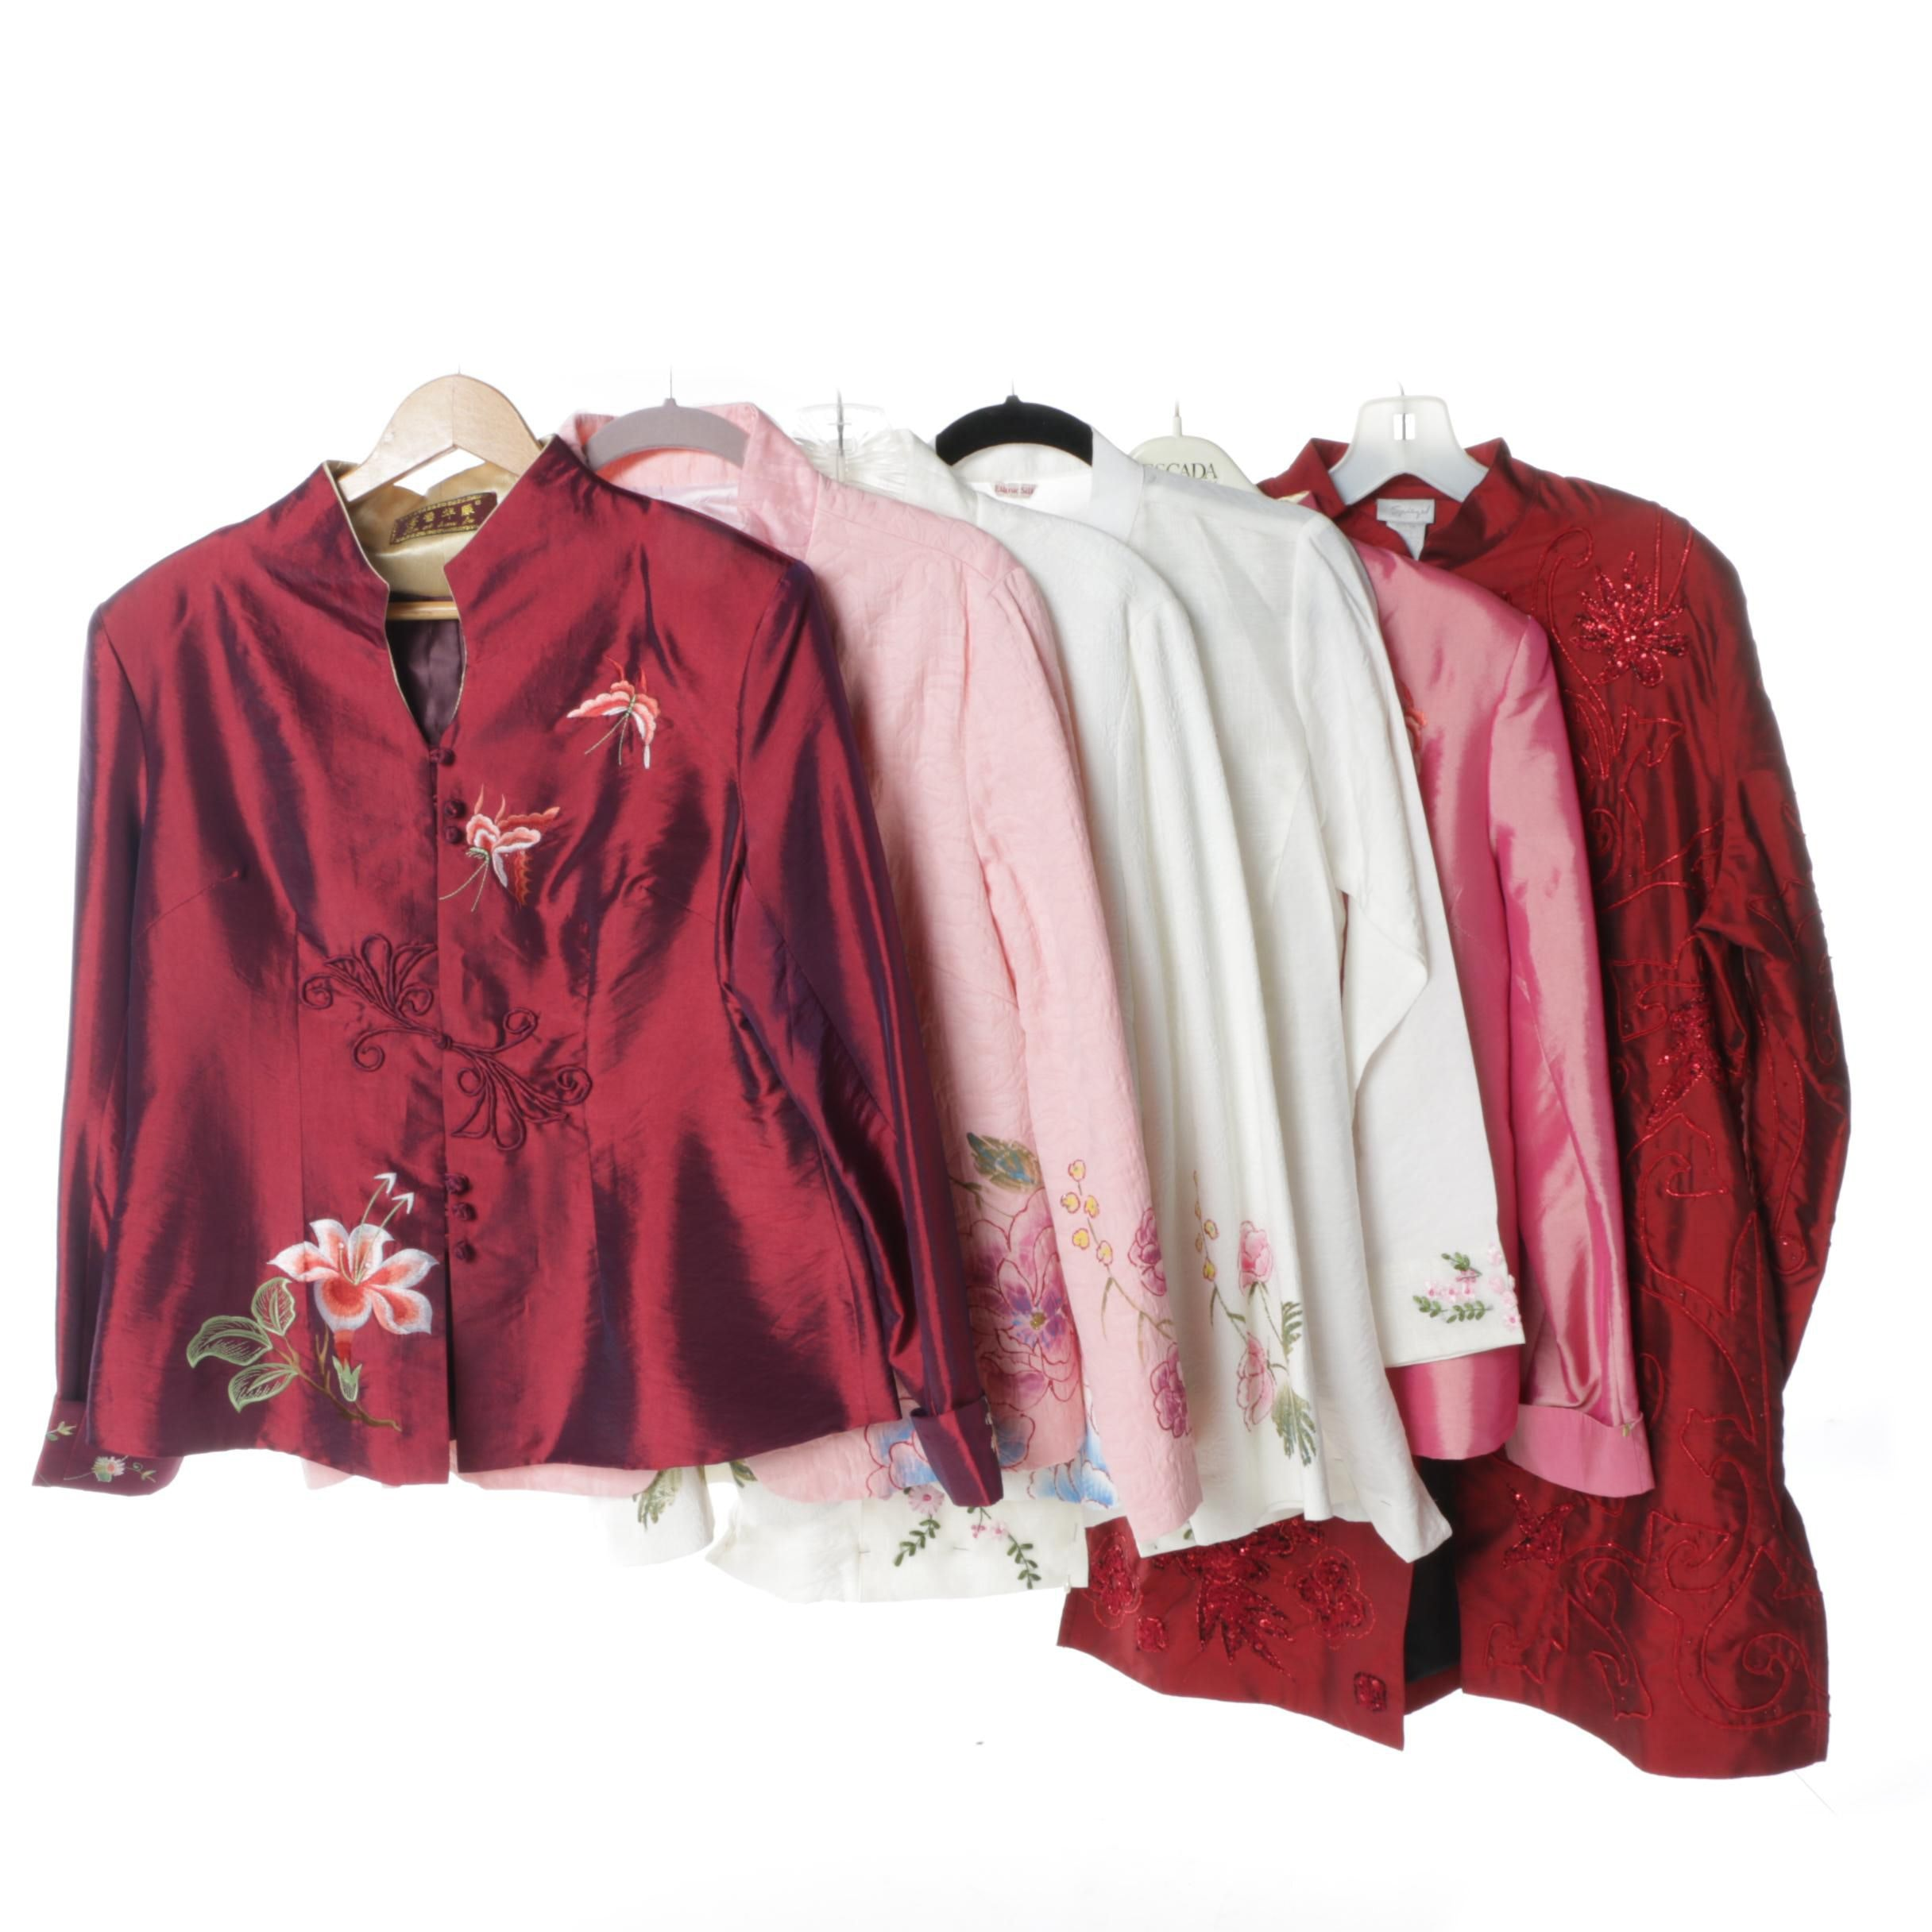 Women's Chinese Inspired Jackets